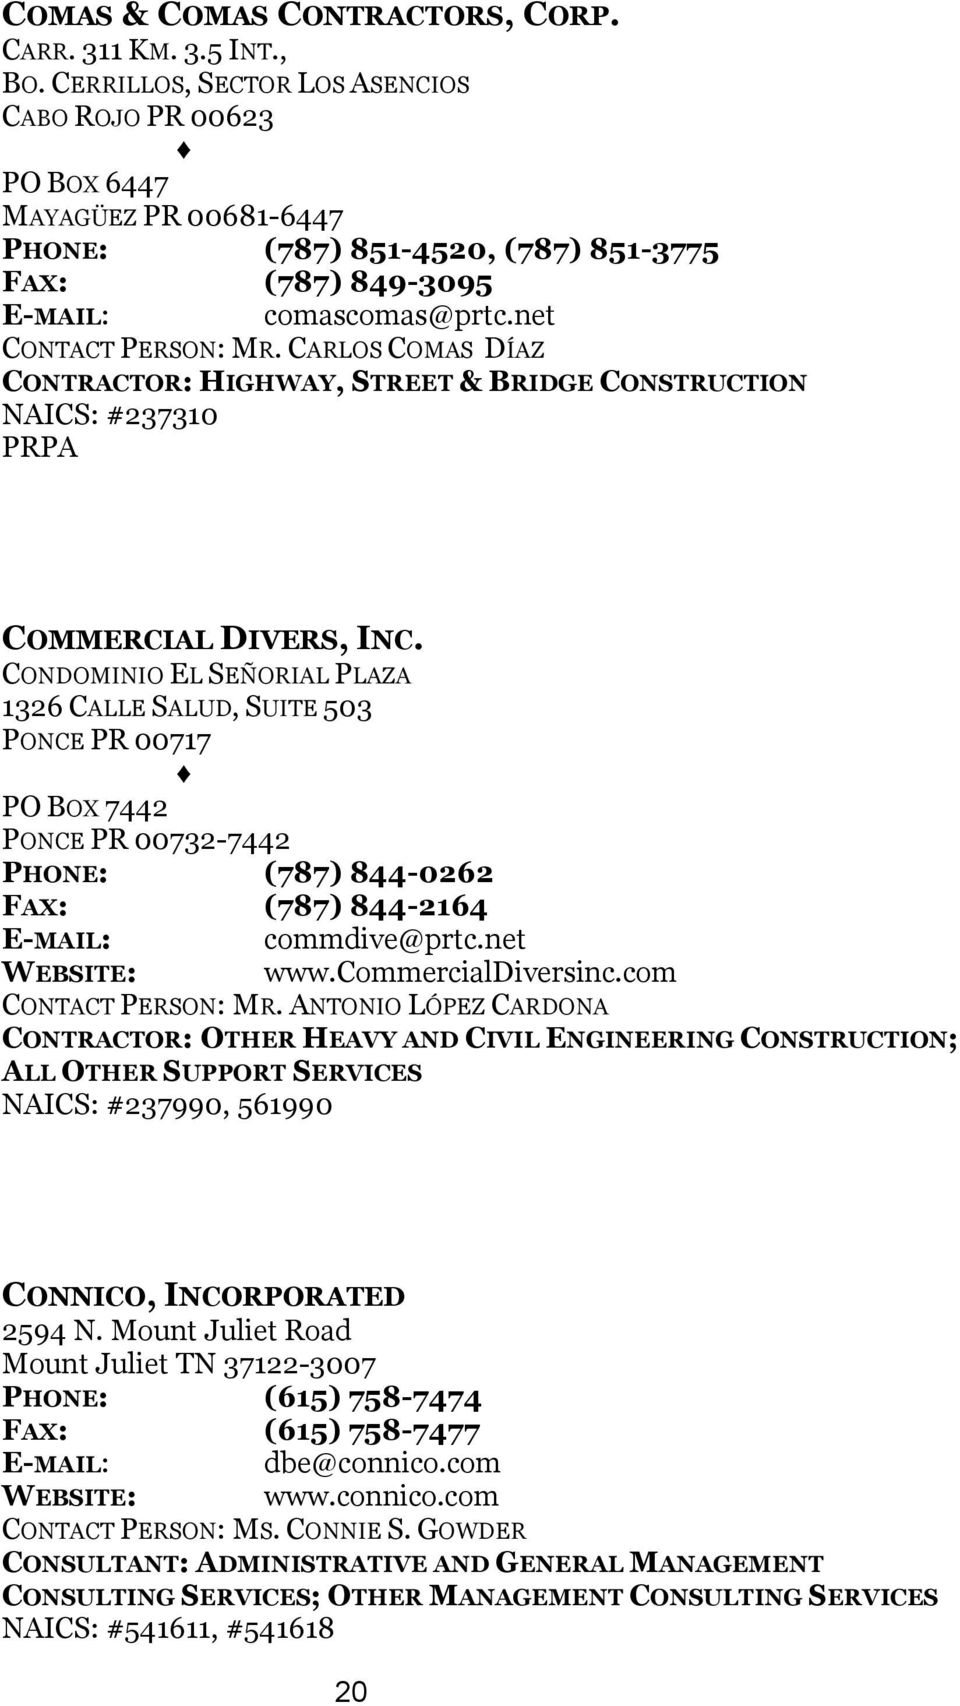 CARLOS COMAS DÍAZ CONTRACTOR: HIGHWAY, STREET & BRIDGE CONSTRUCTION NAICS: #237310 COMMERCIAL DIVERS, INC.